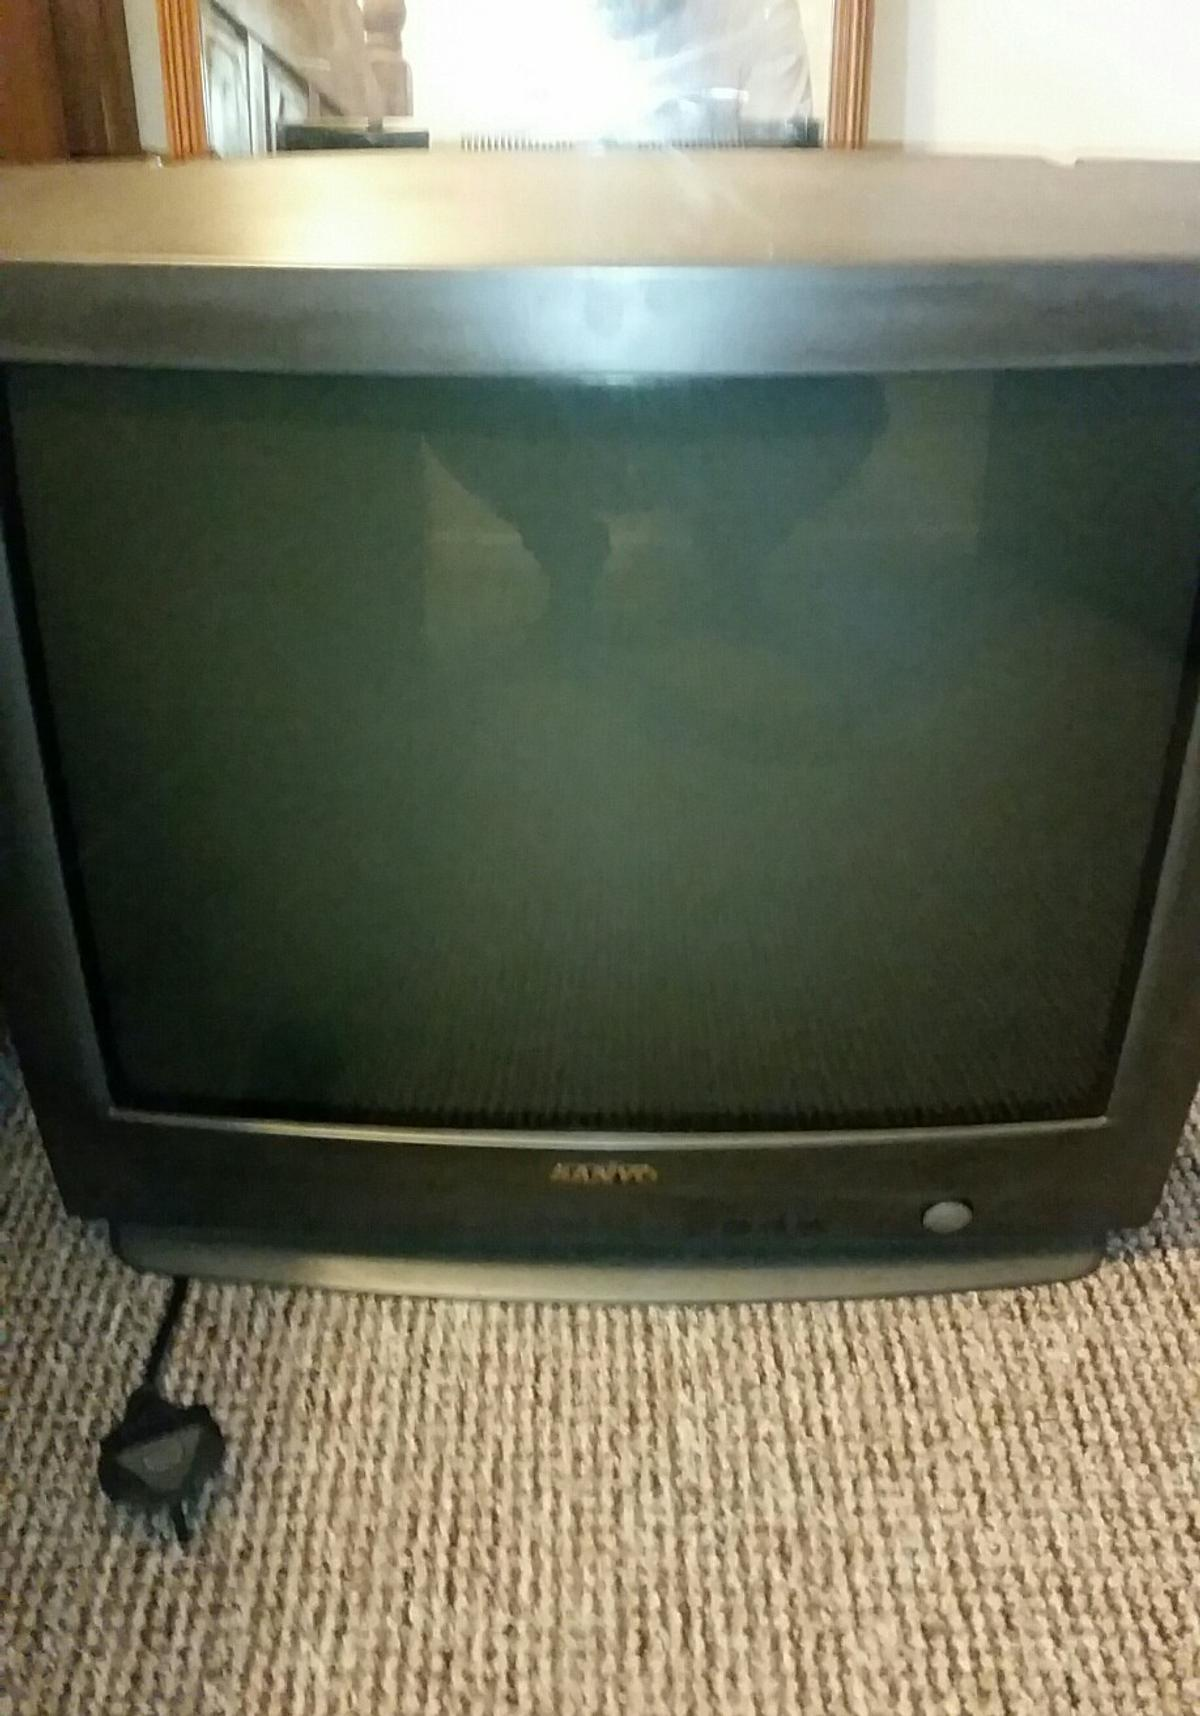 Fat back sanyo tv  Working